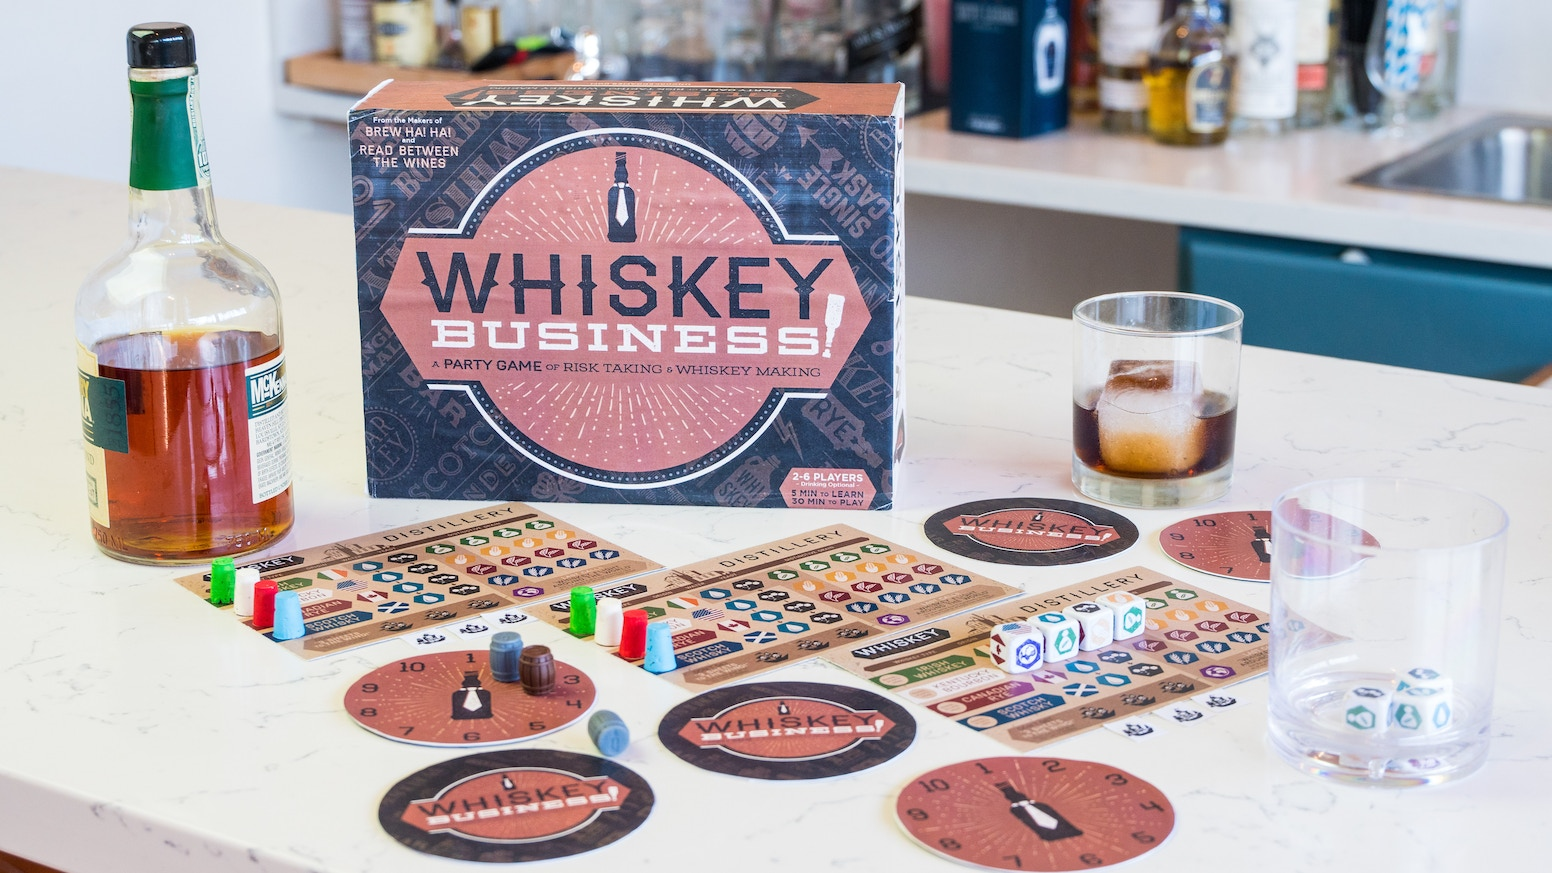 WHISKEY BUSINESS! A new fun dice game from the makers of BREW HA HA! and READ BETWEEN THE WINES! This tabletop party game is top shelf!